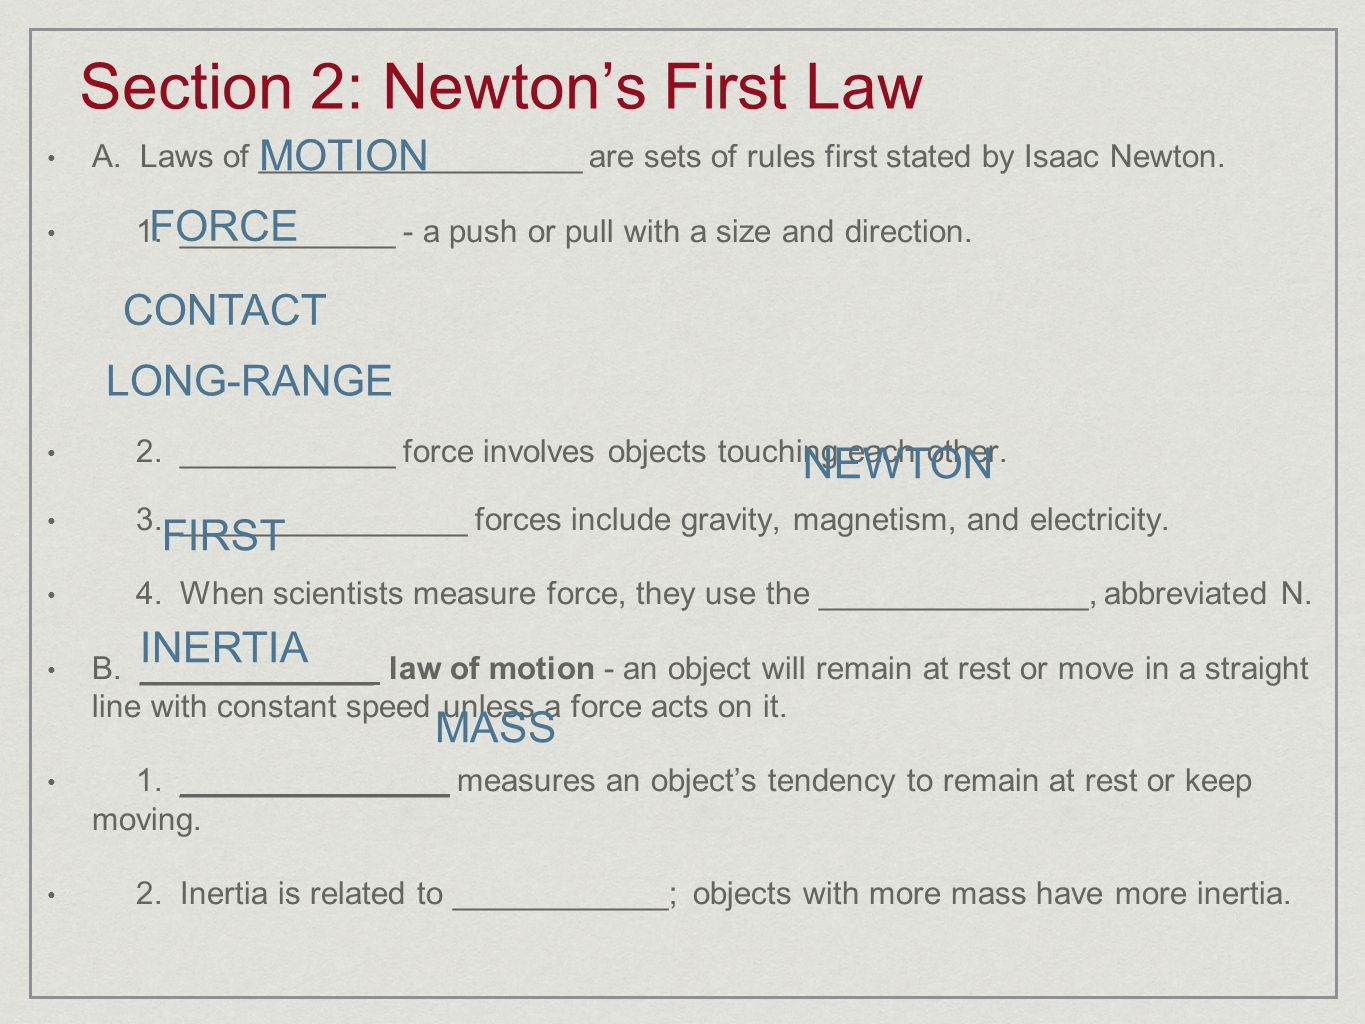 worksheet Laws Of Motion Worksheet newtons laws of motion ppt video online download section 2 first law